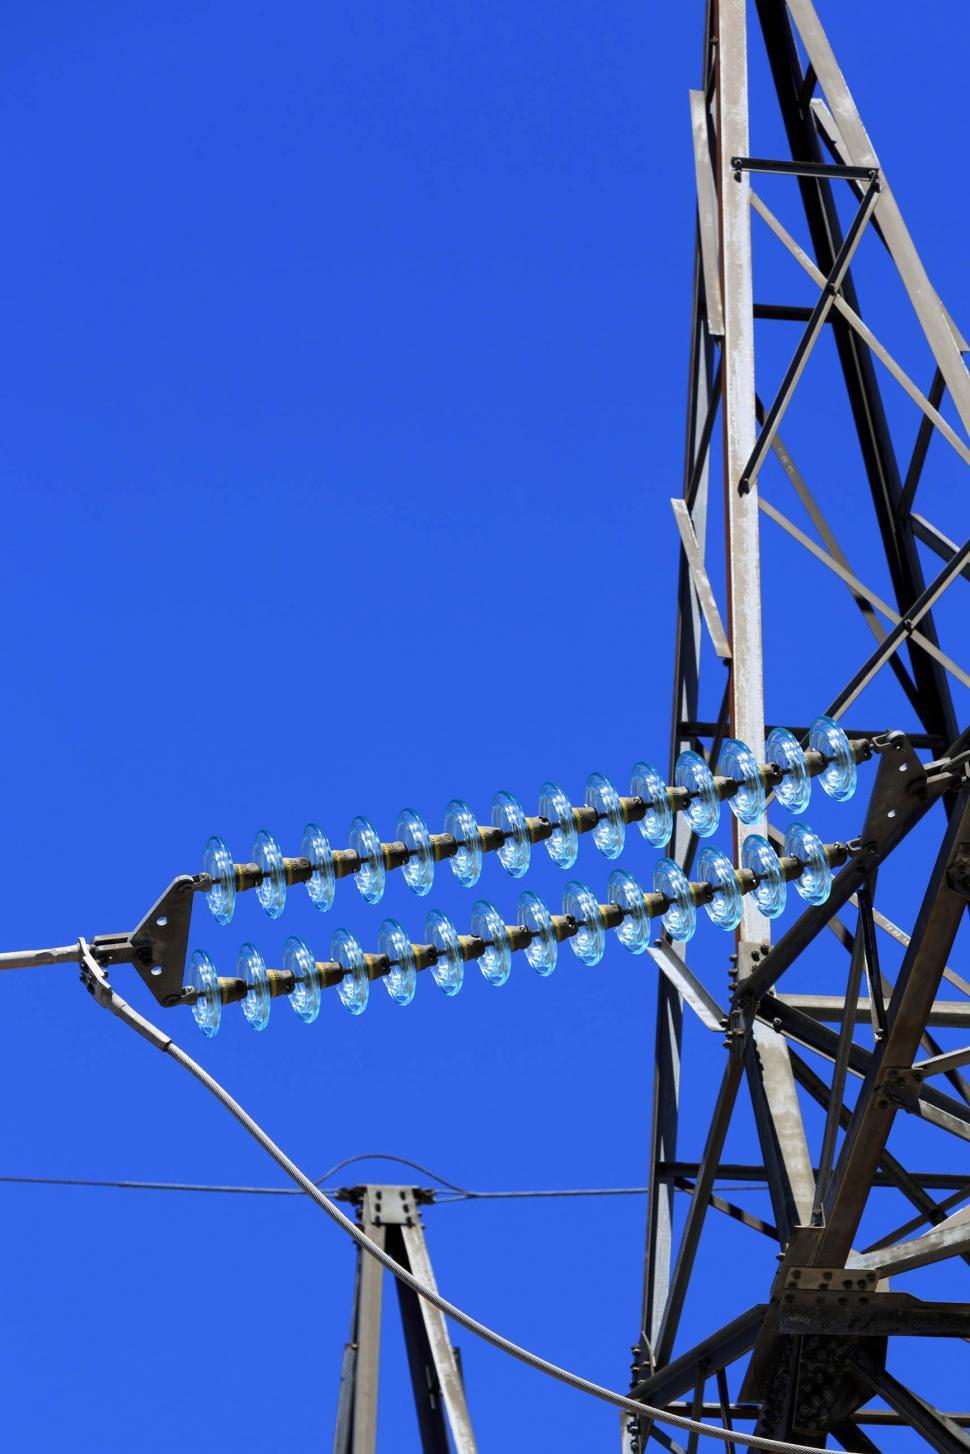 Download Free Stock Photo of High voltage tower closeup